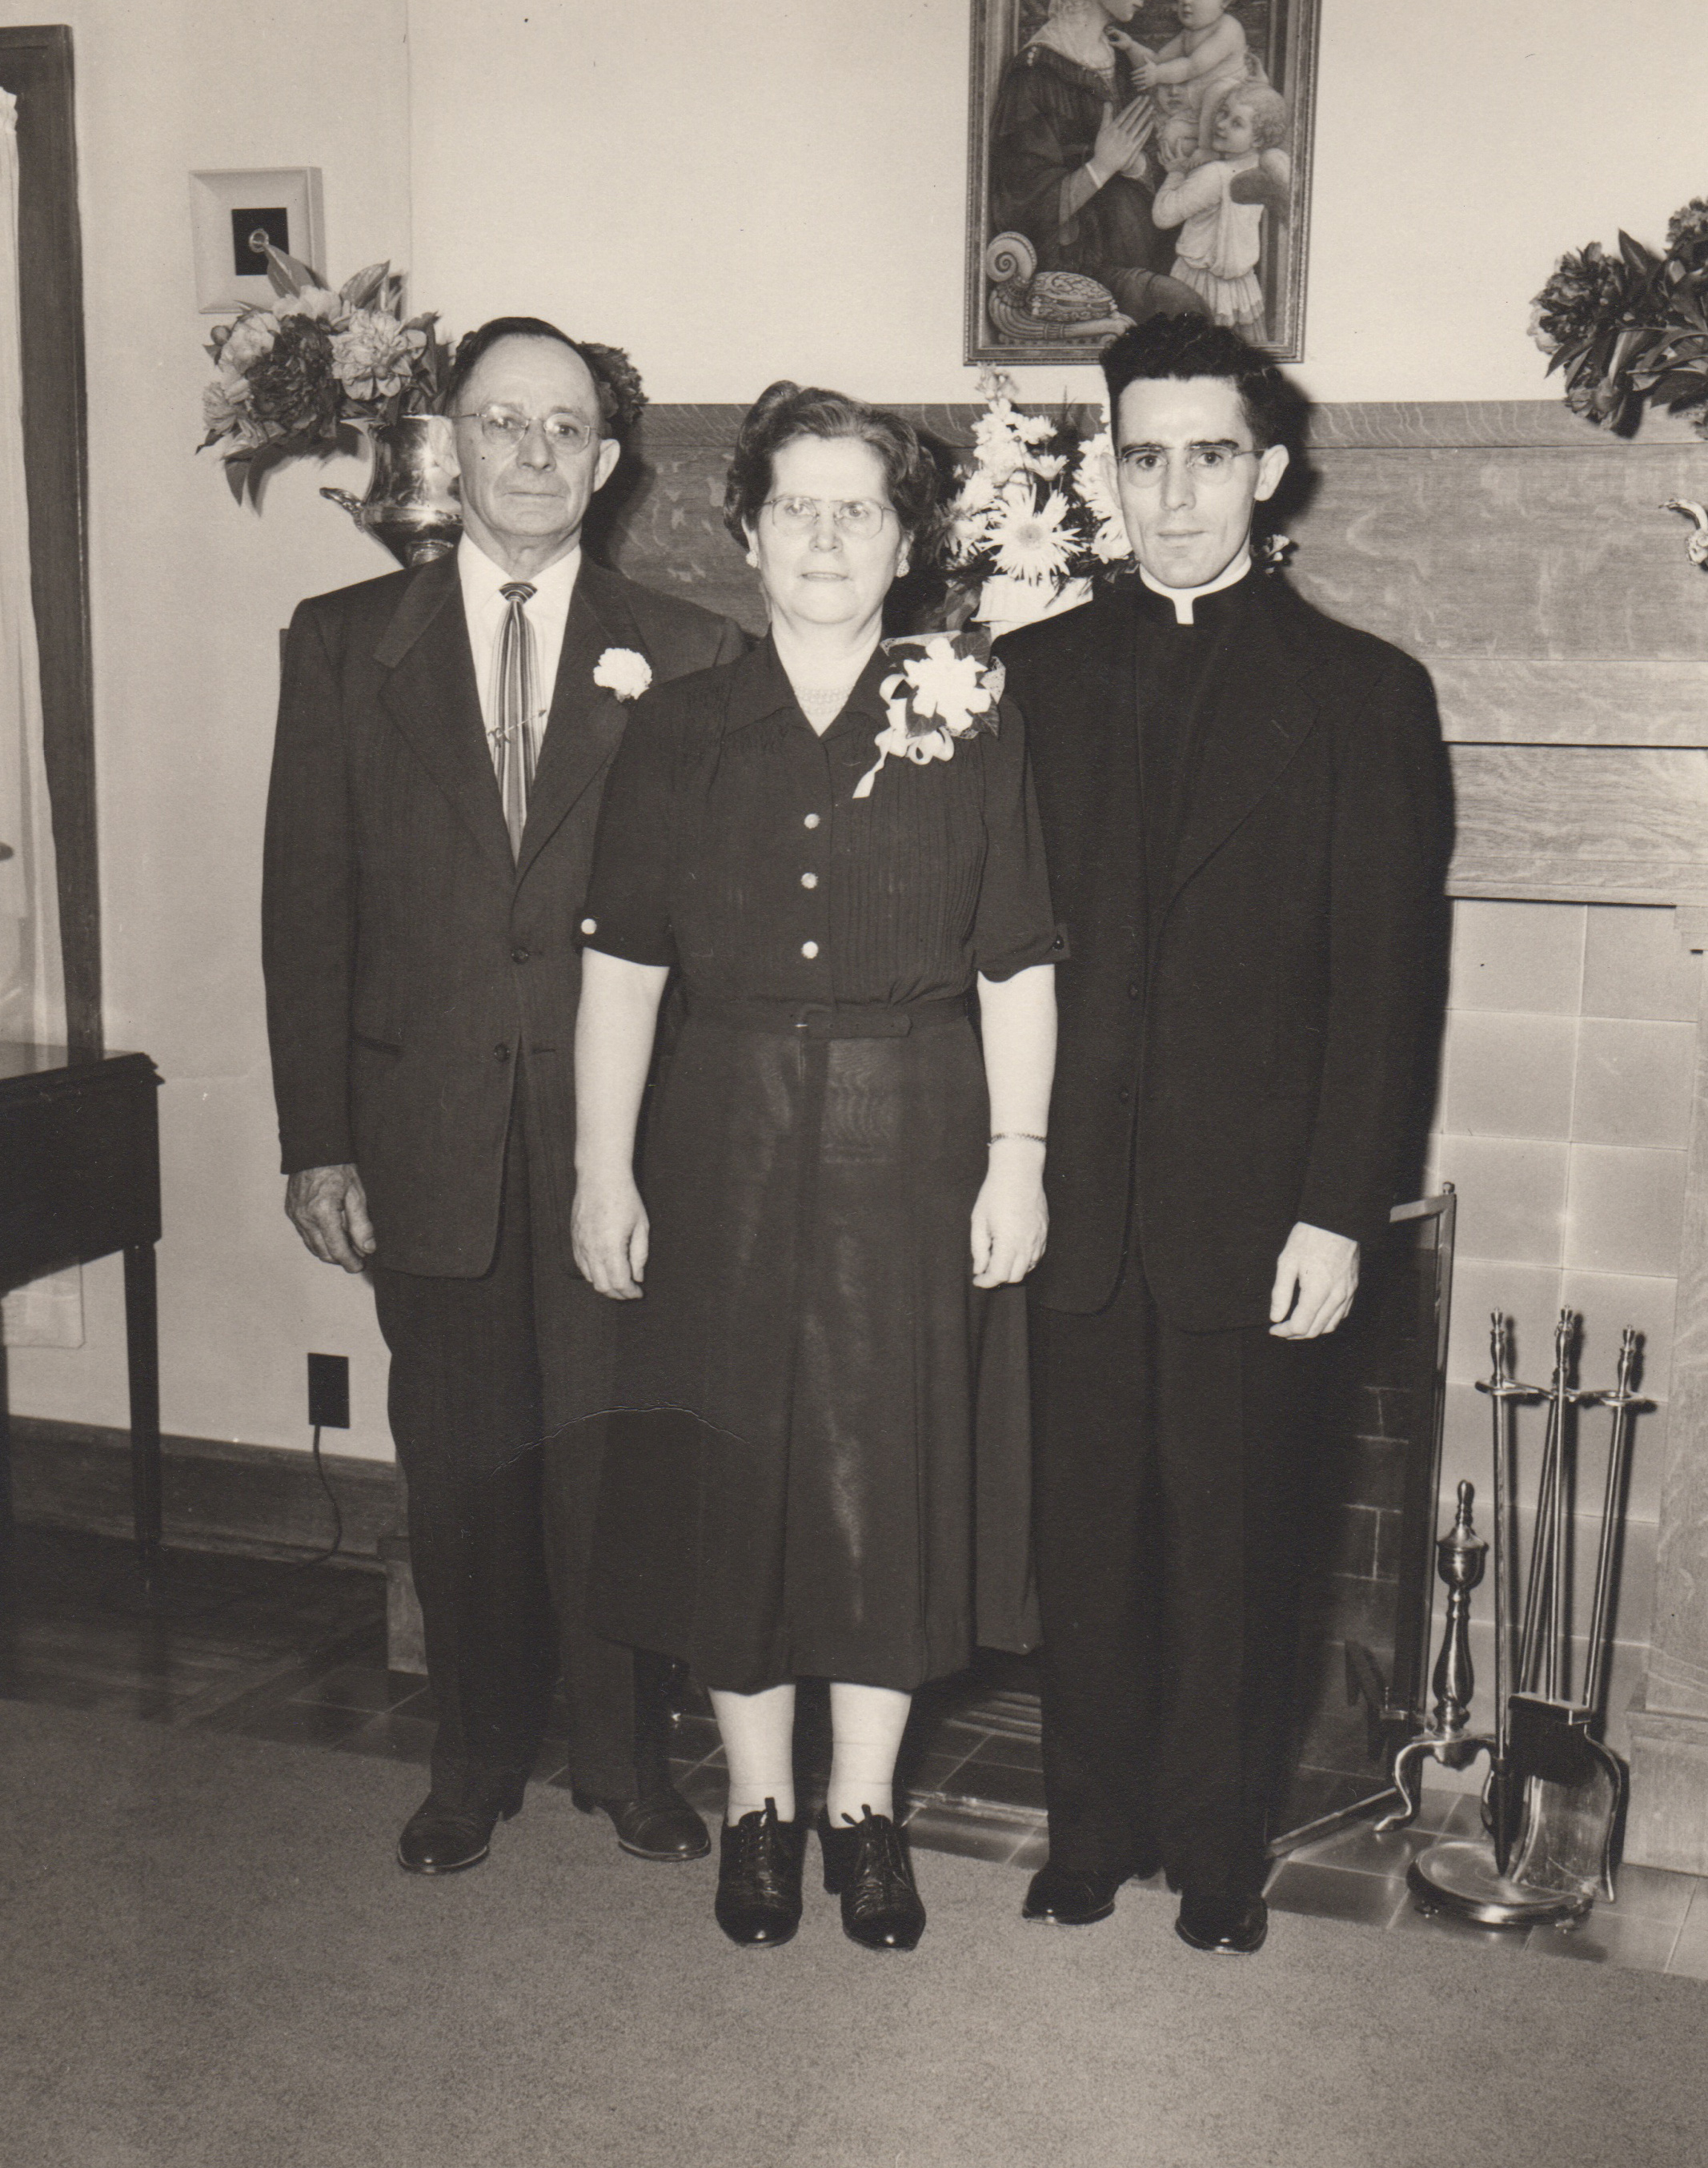 Fr. Bertrand and his parents on the occasion of his Ordination to the Priesthood.